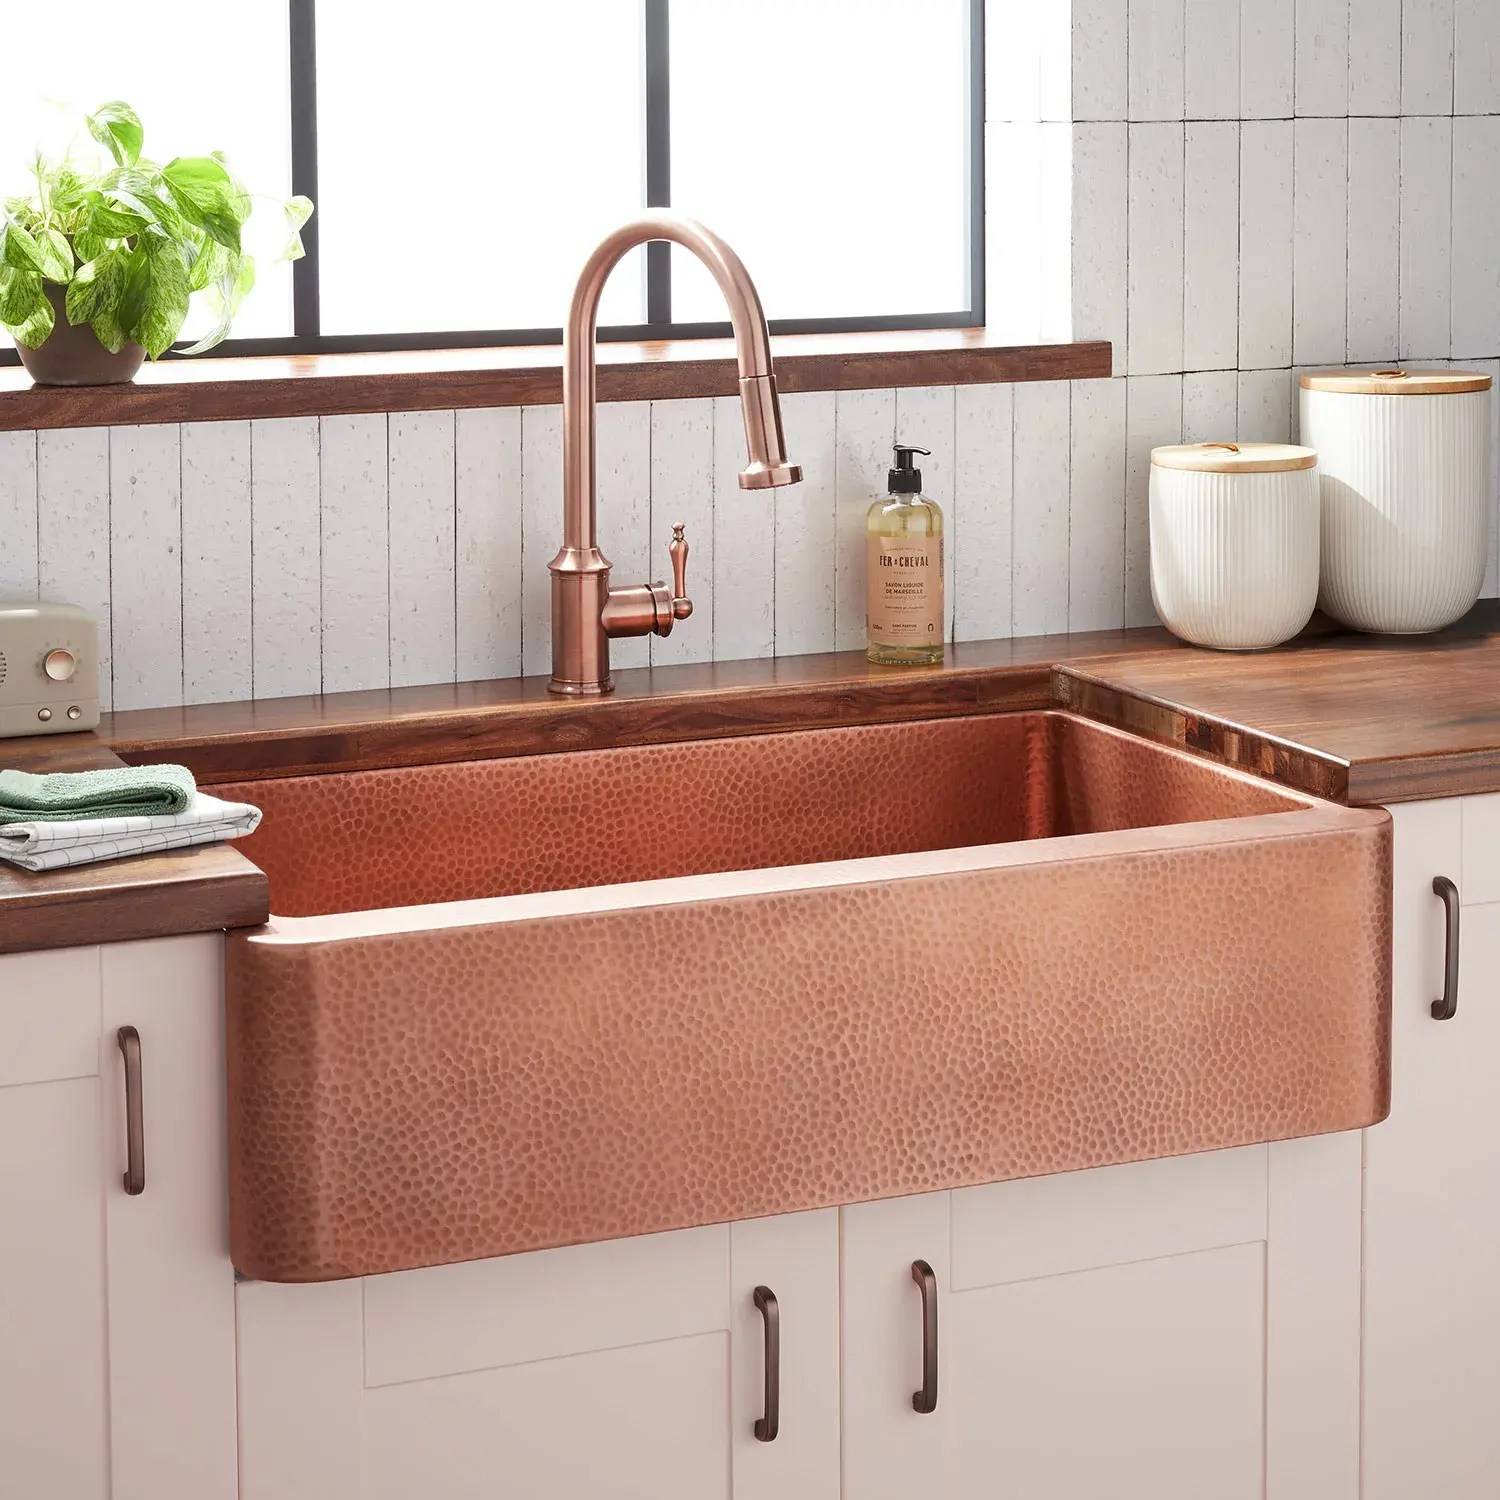 36 fiona hammered copper farmhouse sink